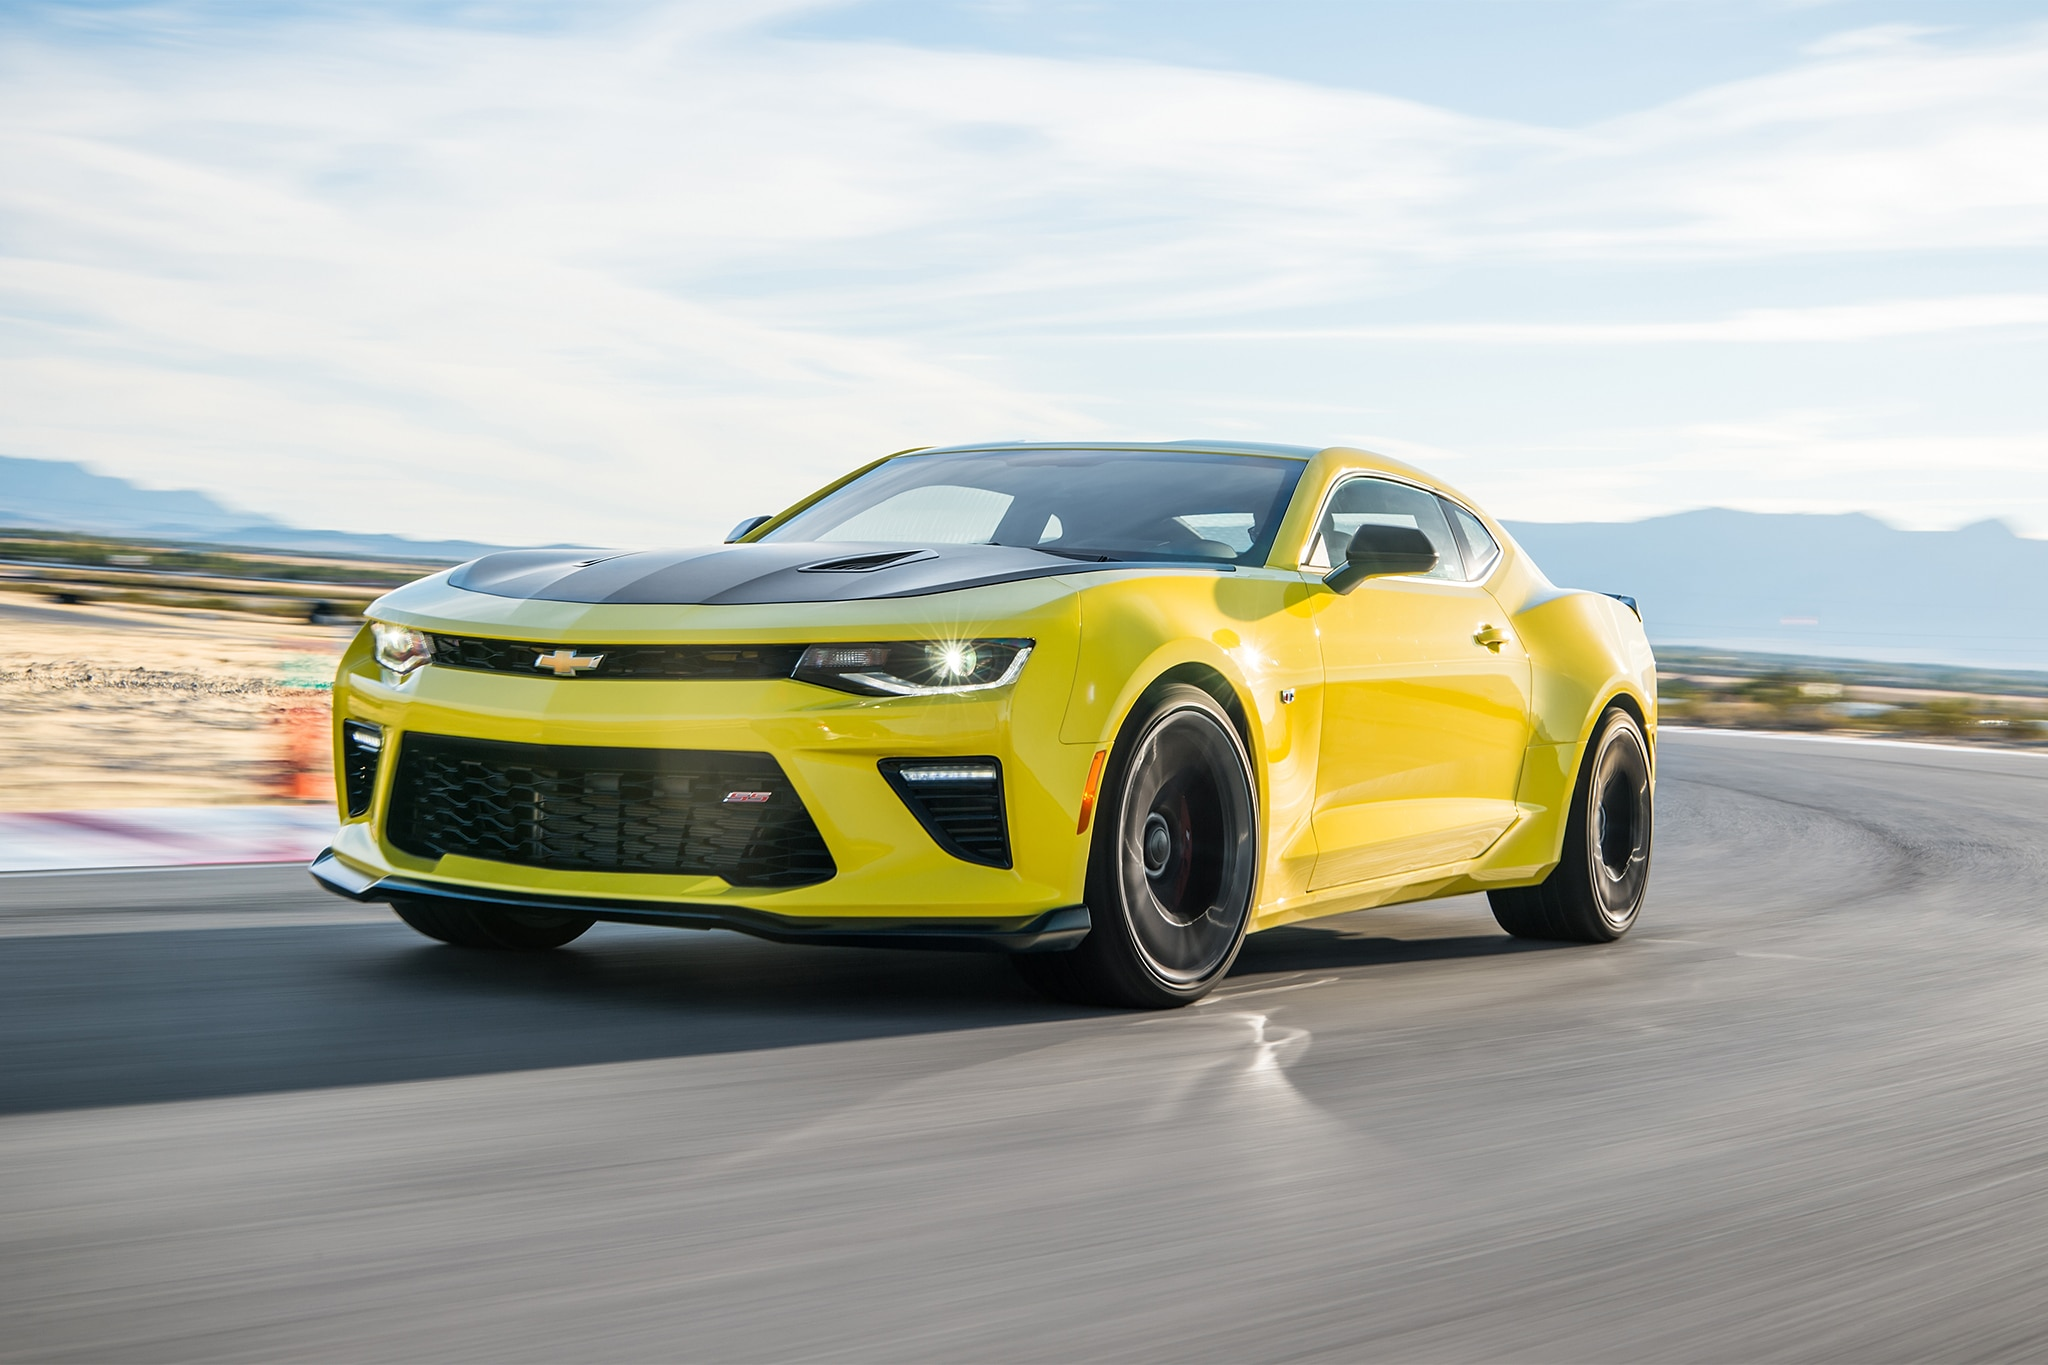 2017 Chevrolet Camaro SS 1LE First Drive Review | Automobile